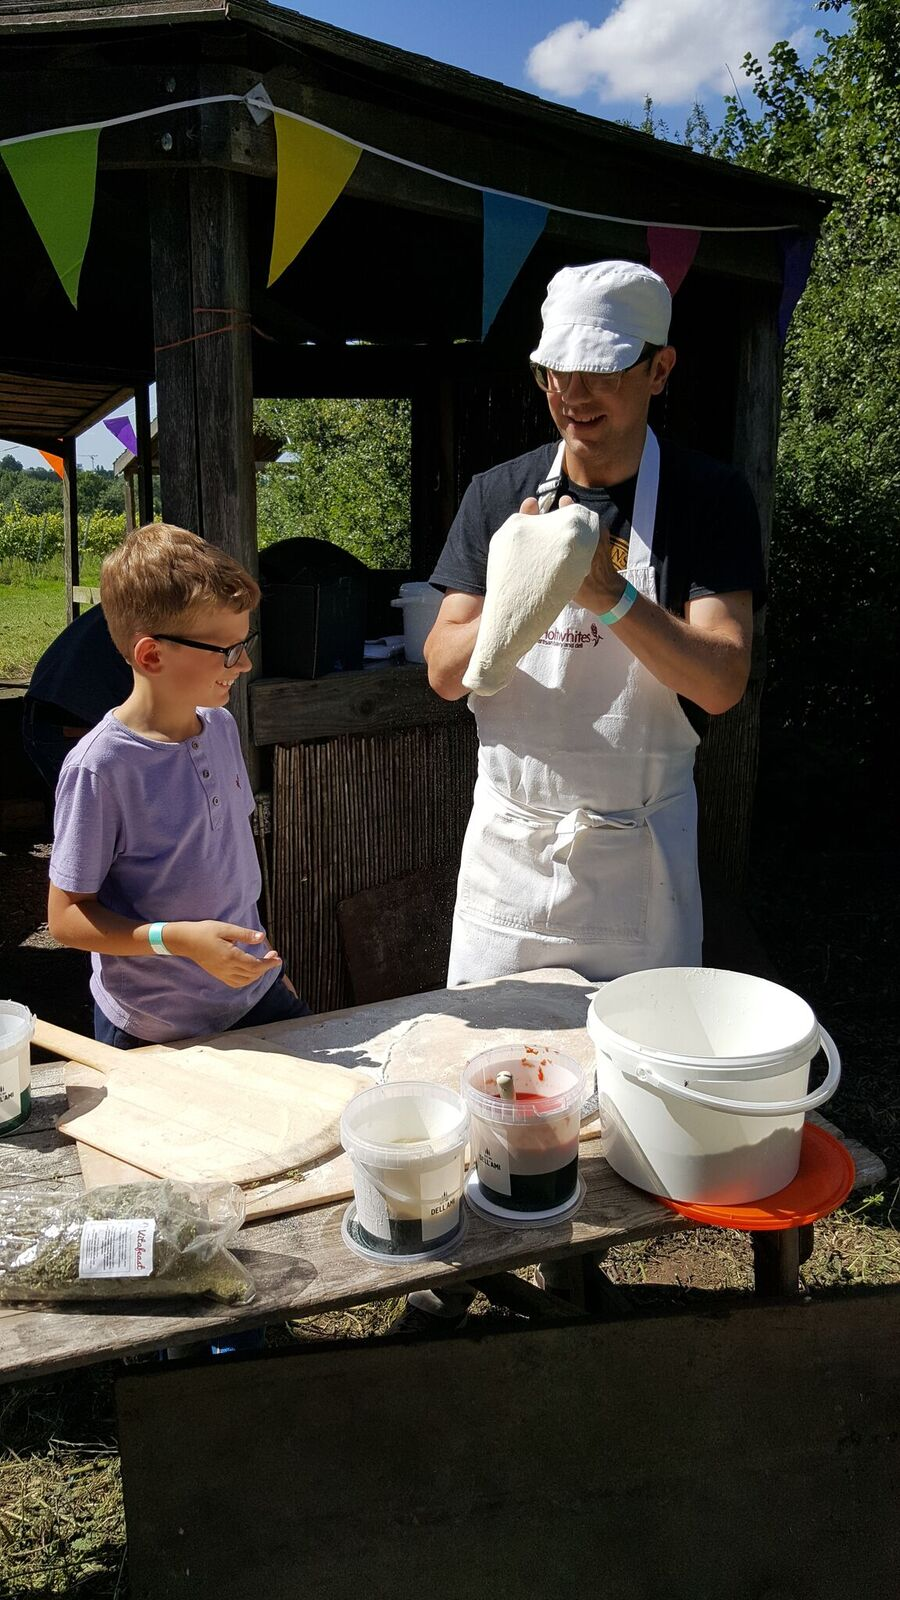 Richard of Holtwhites Bakery (and young apprentice) make pizza in the Vineayard's cob oven